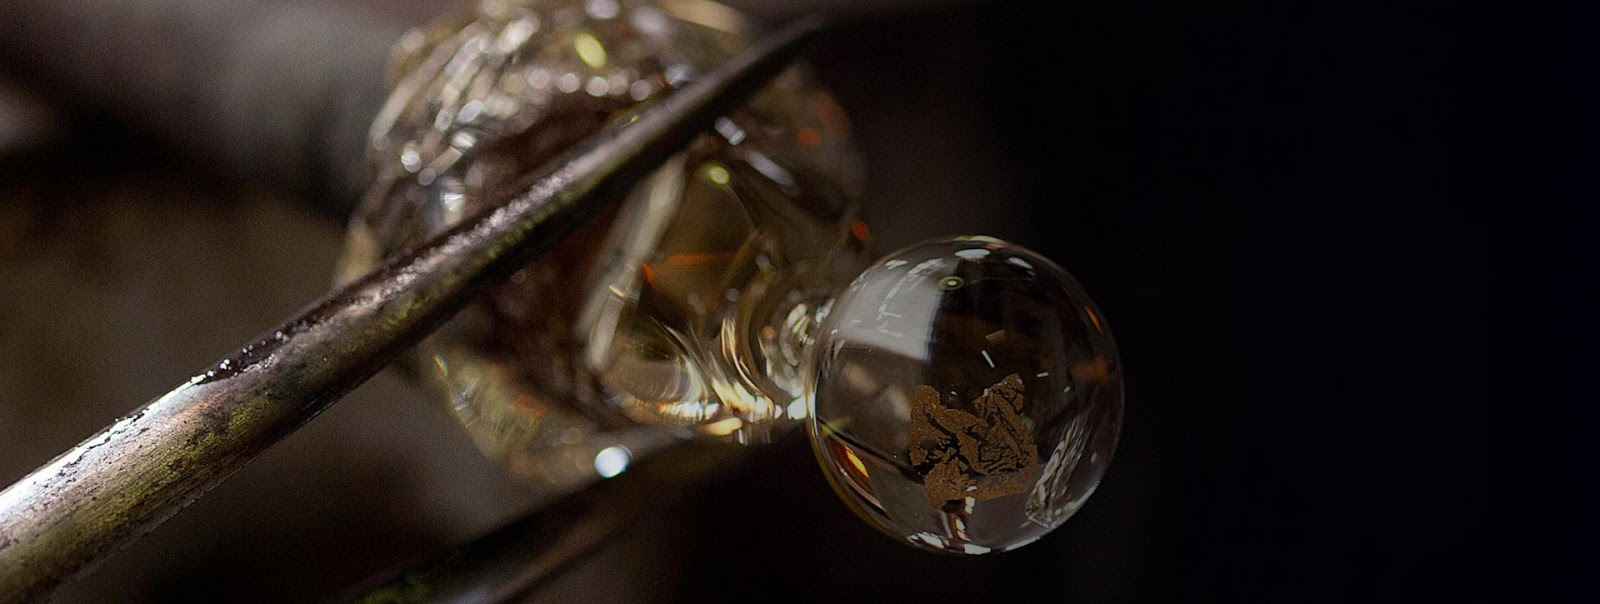 Dior_s-J_adore-L_Absolu-fragrance-by-Jean-Michel-Othoniel-The-Making-Of3